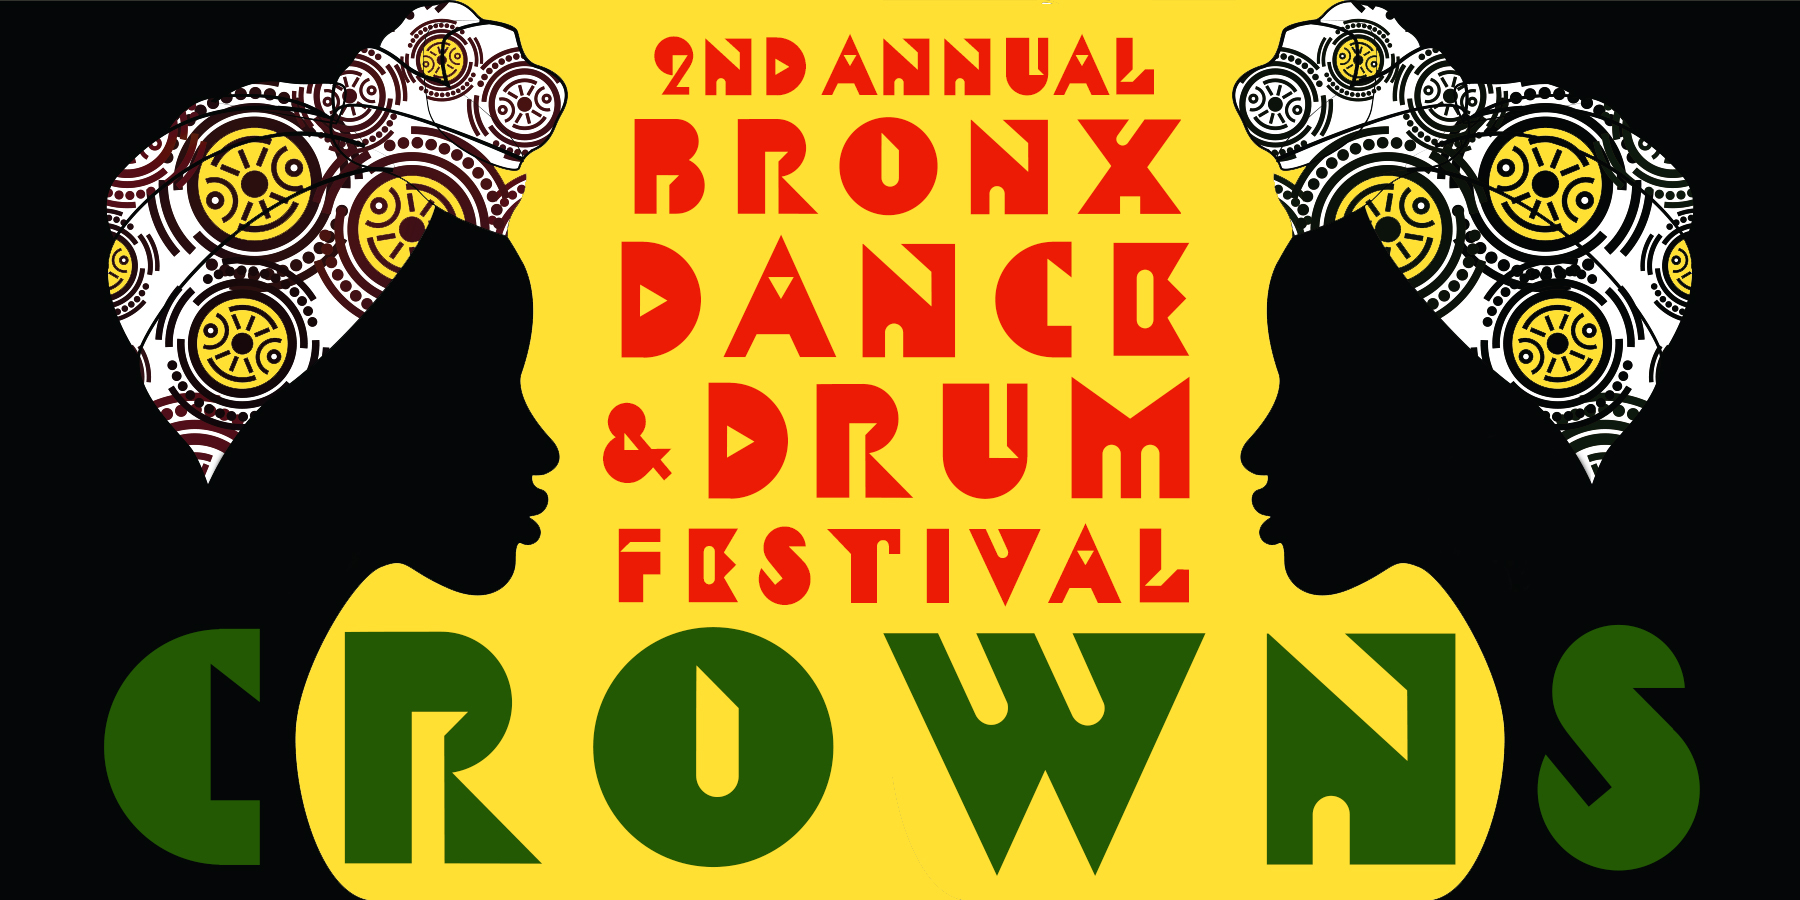 bronx dance & drum festival